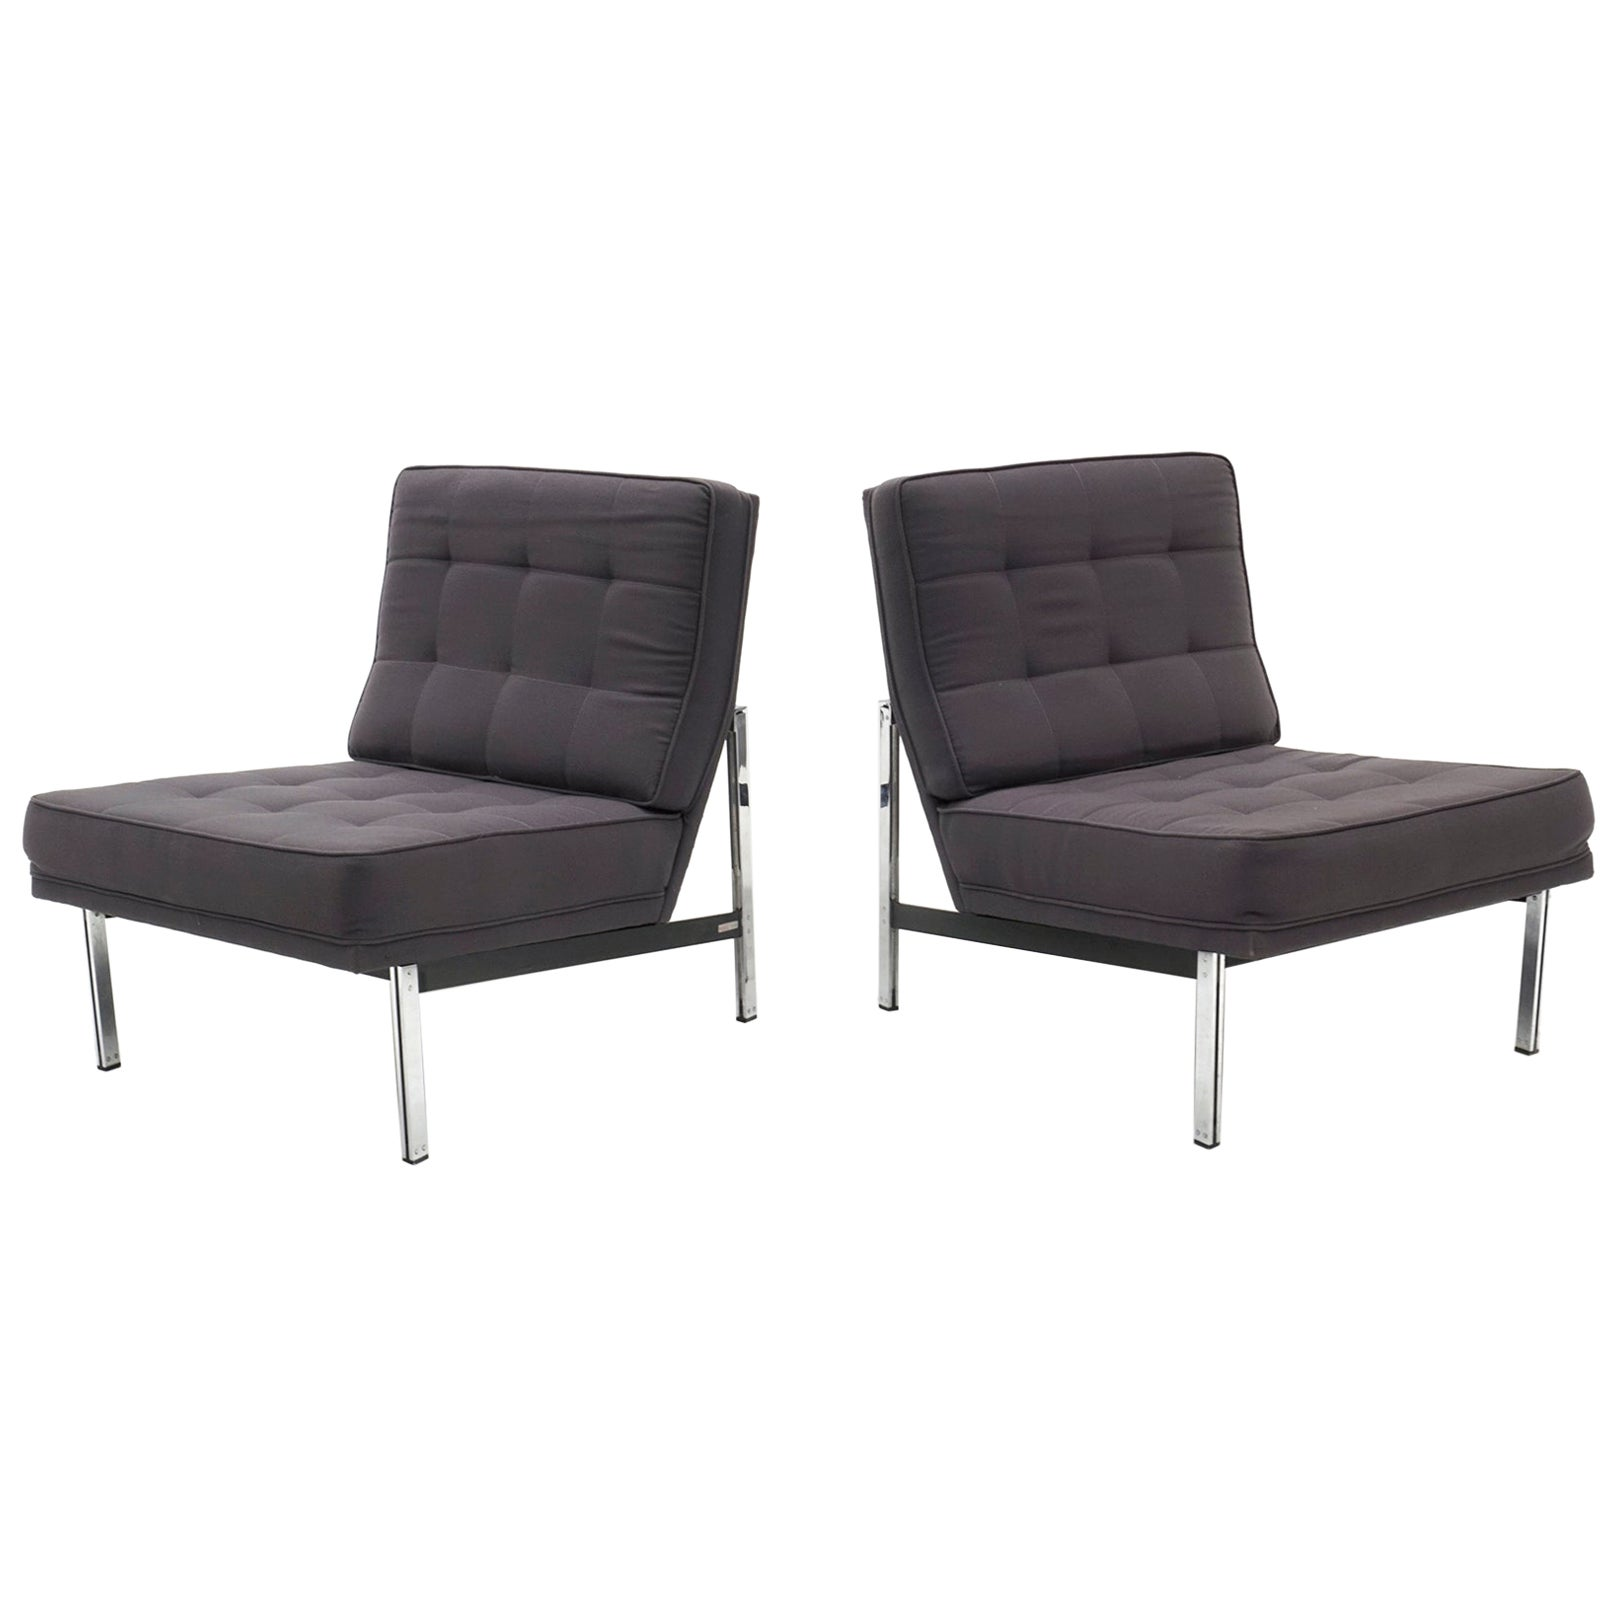 Pair of Armless Parallel Bar Lounge Chairs by Florence Knoll, Gray Fabric Chrome